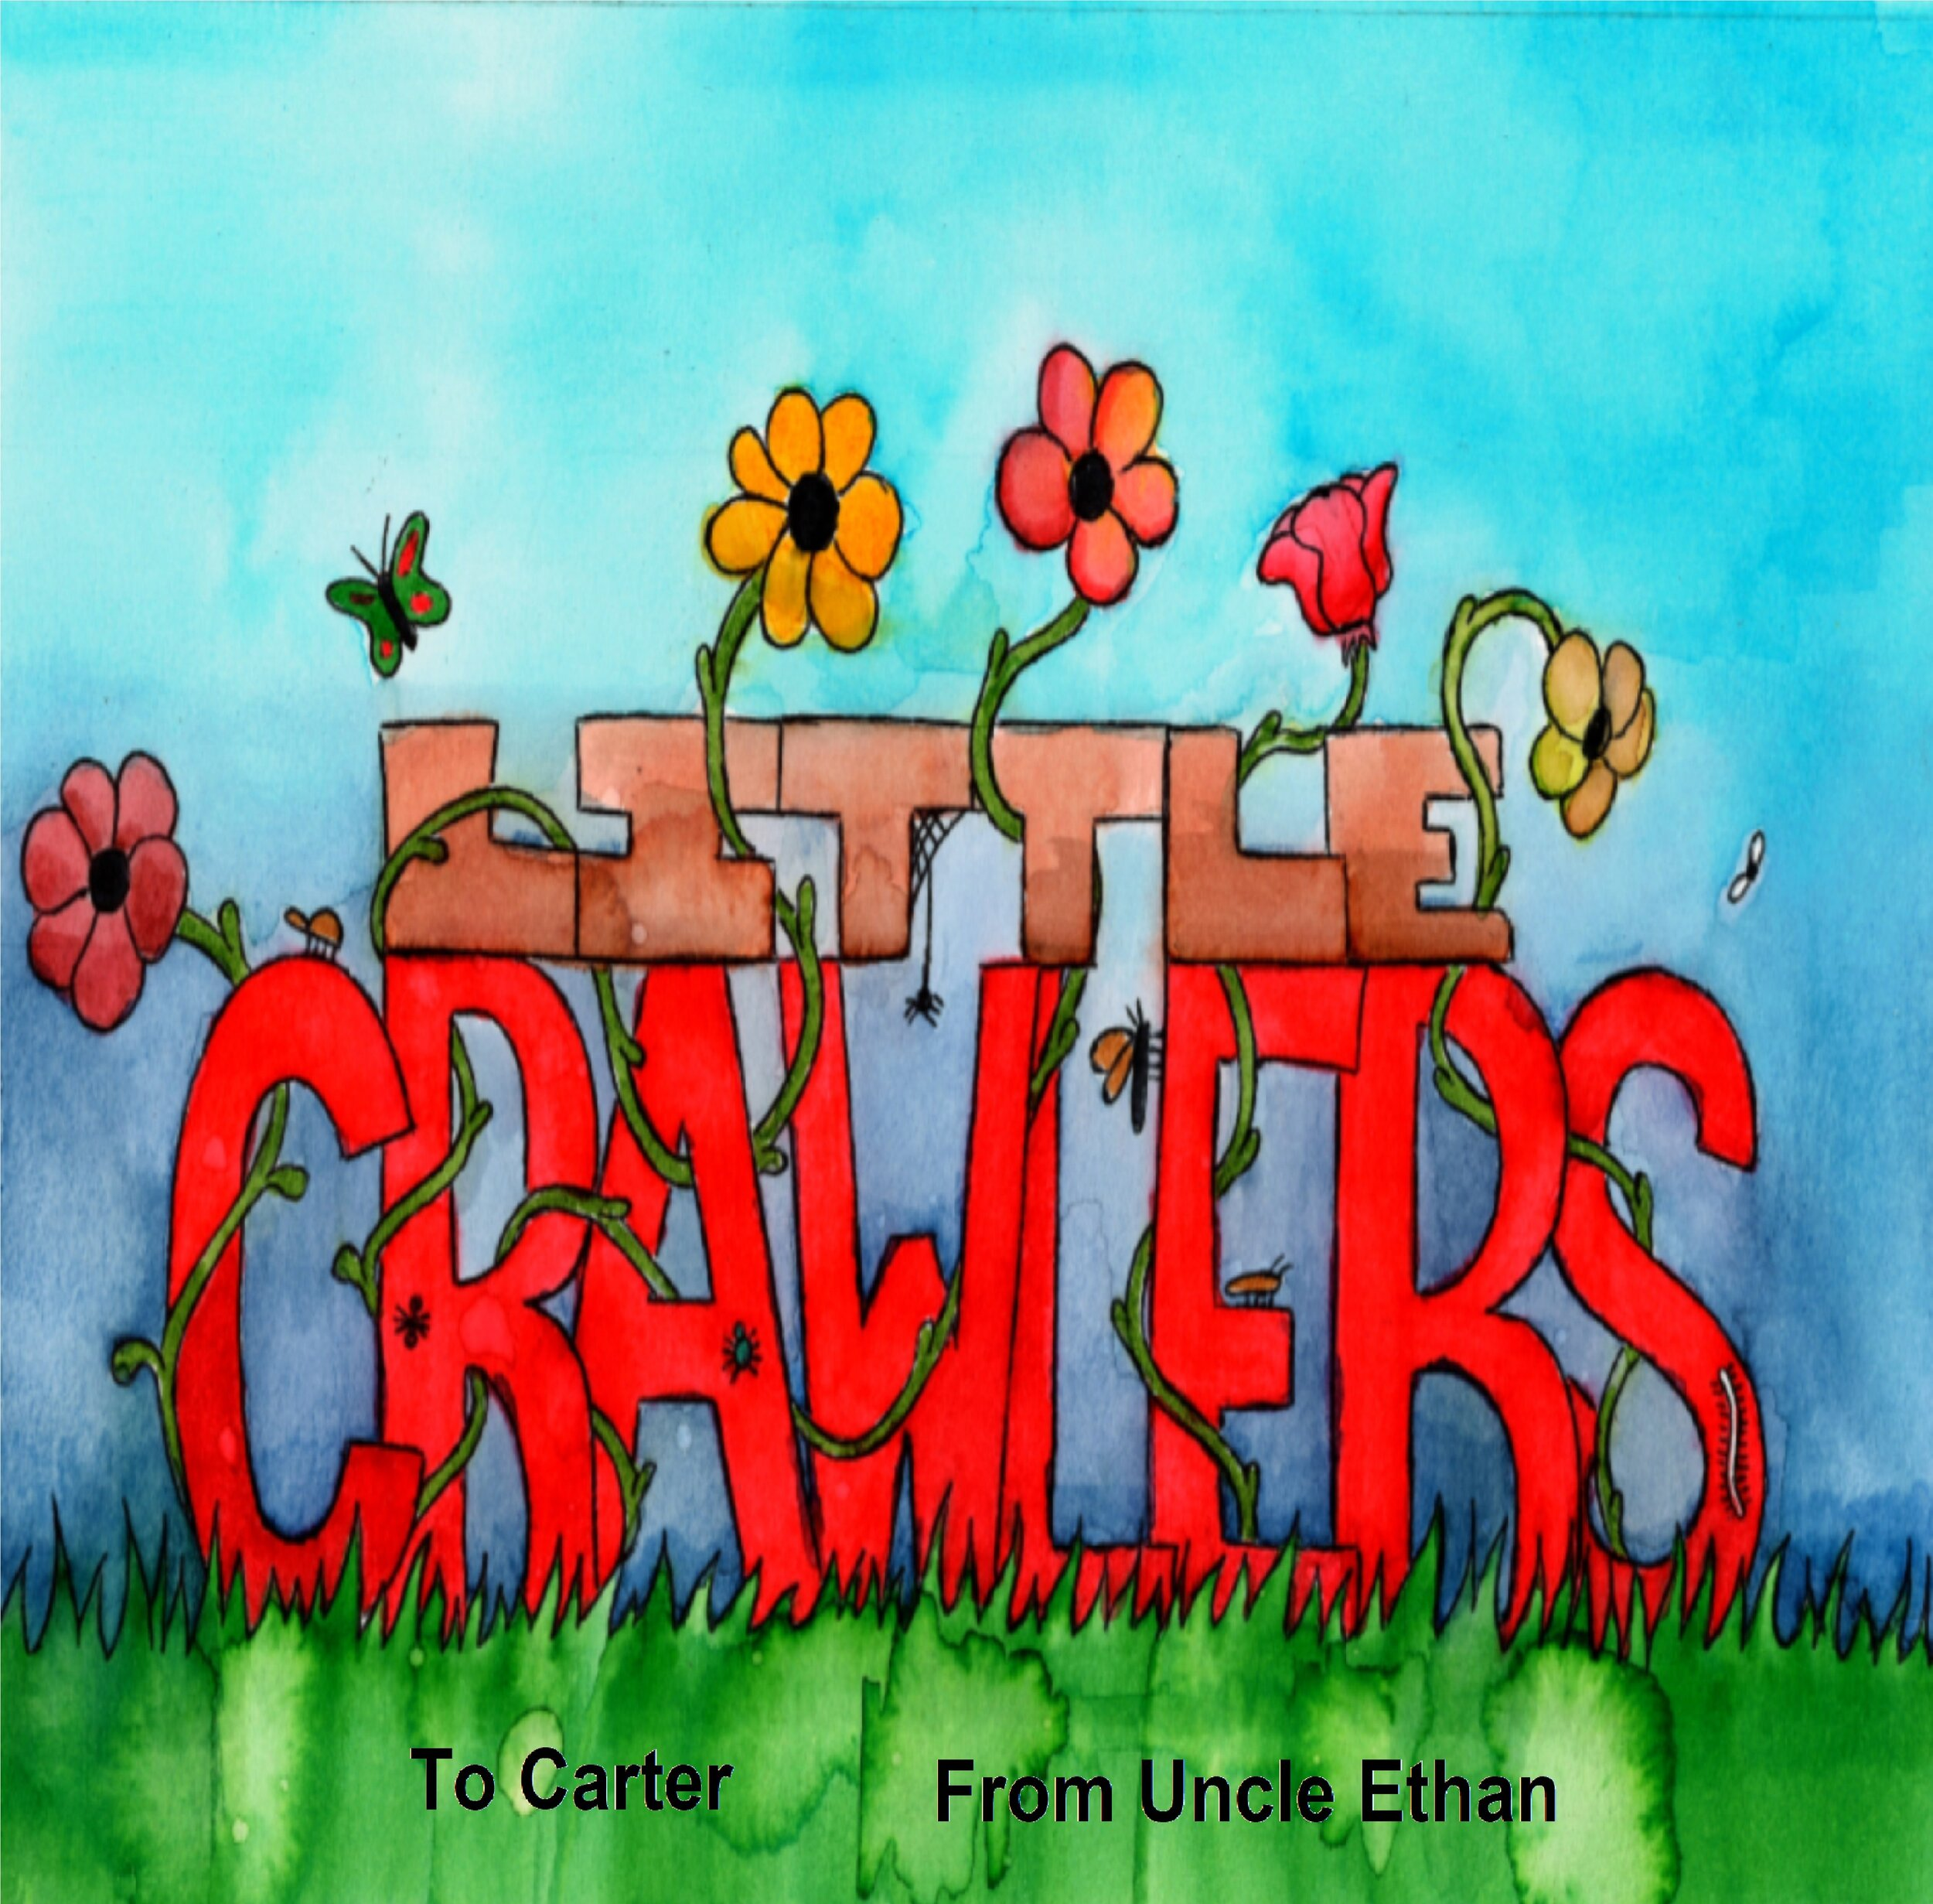 Little Crawlers